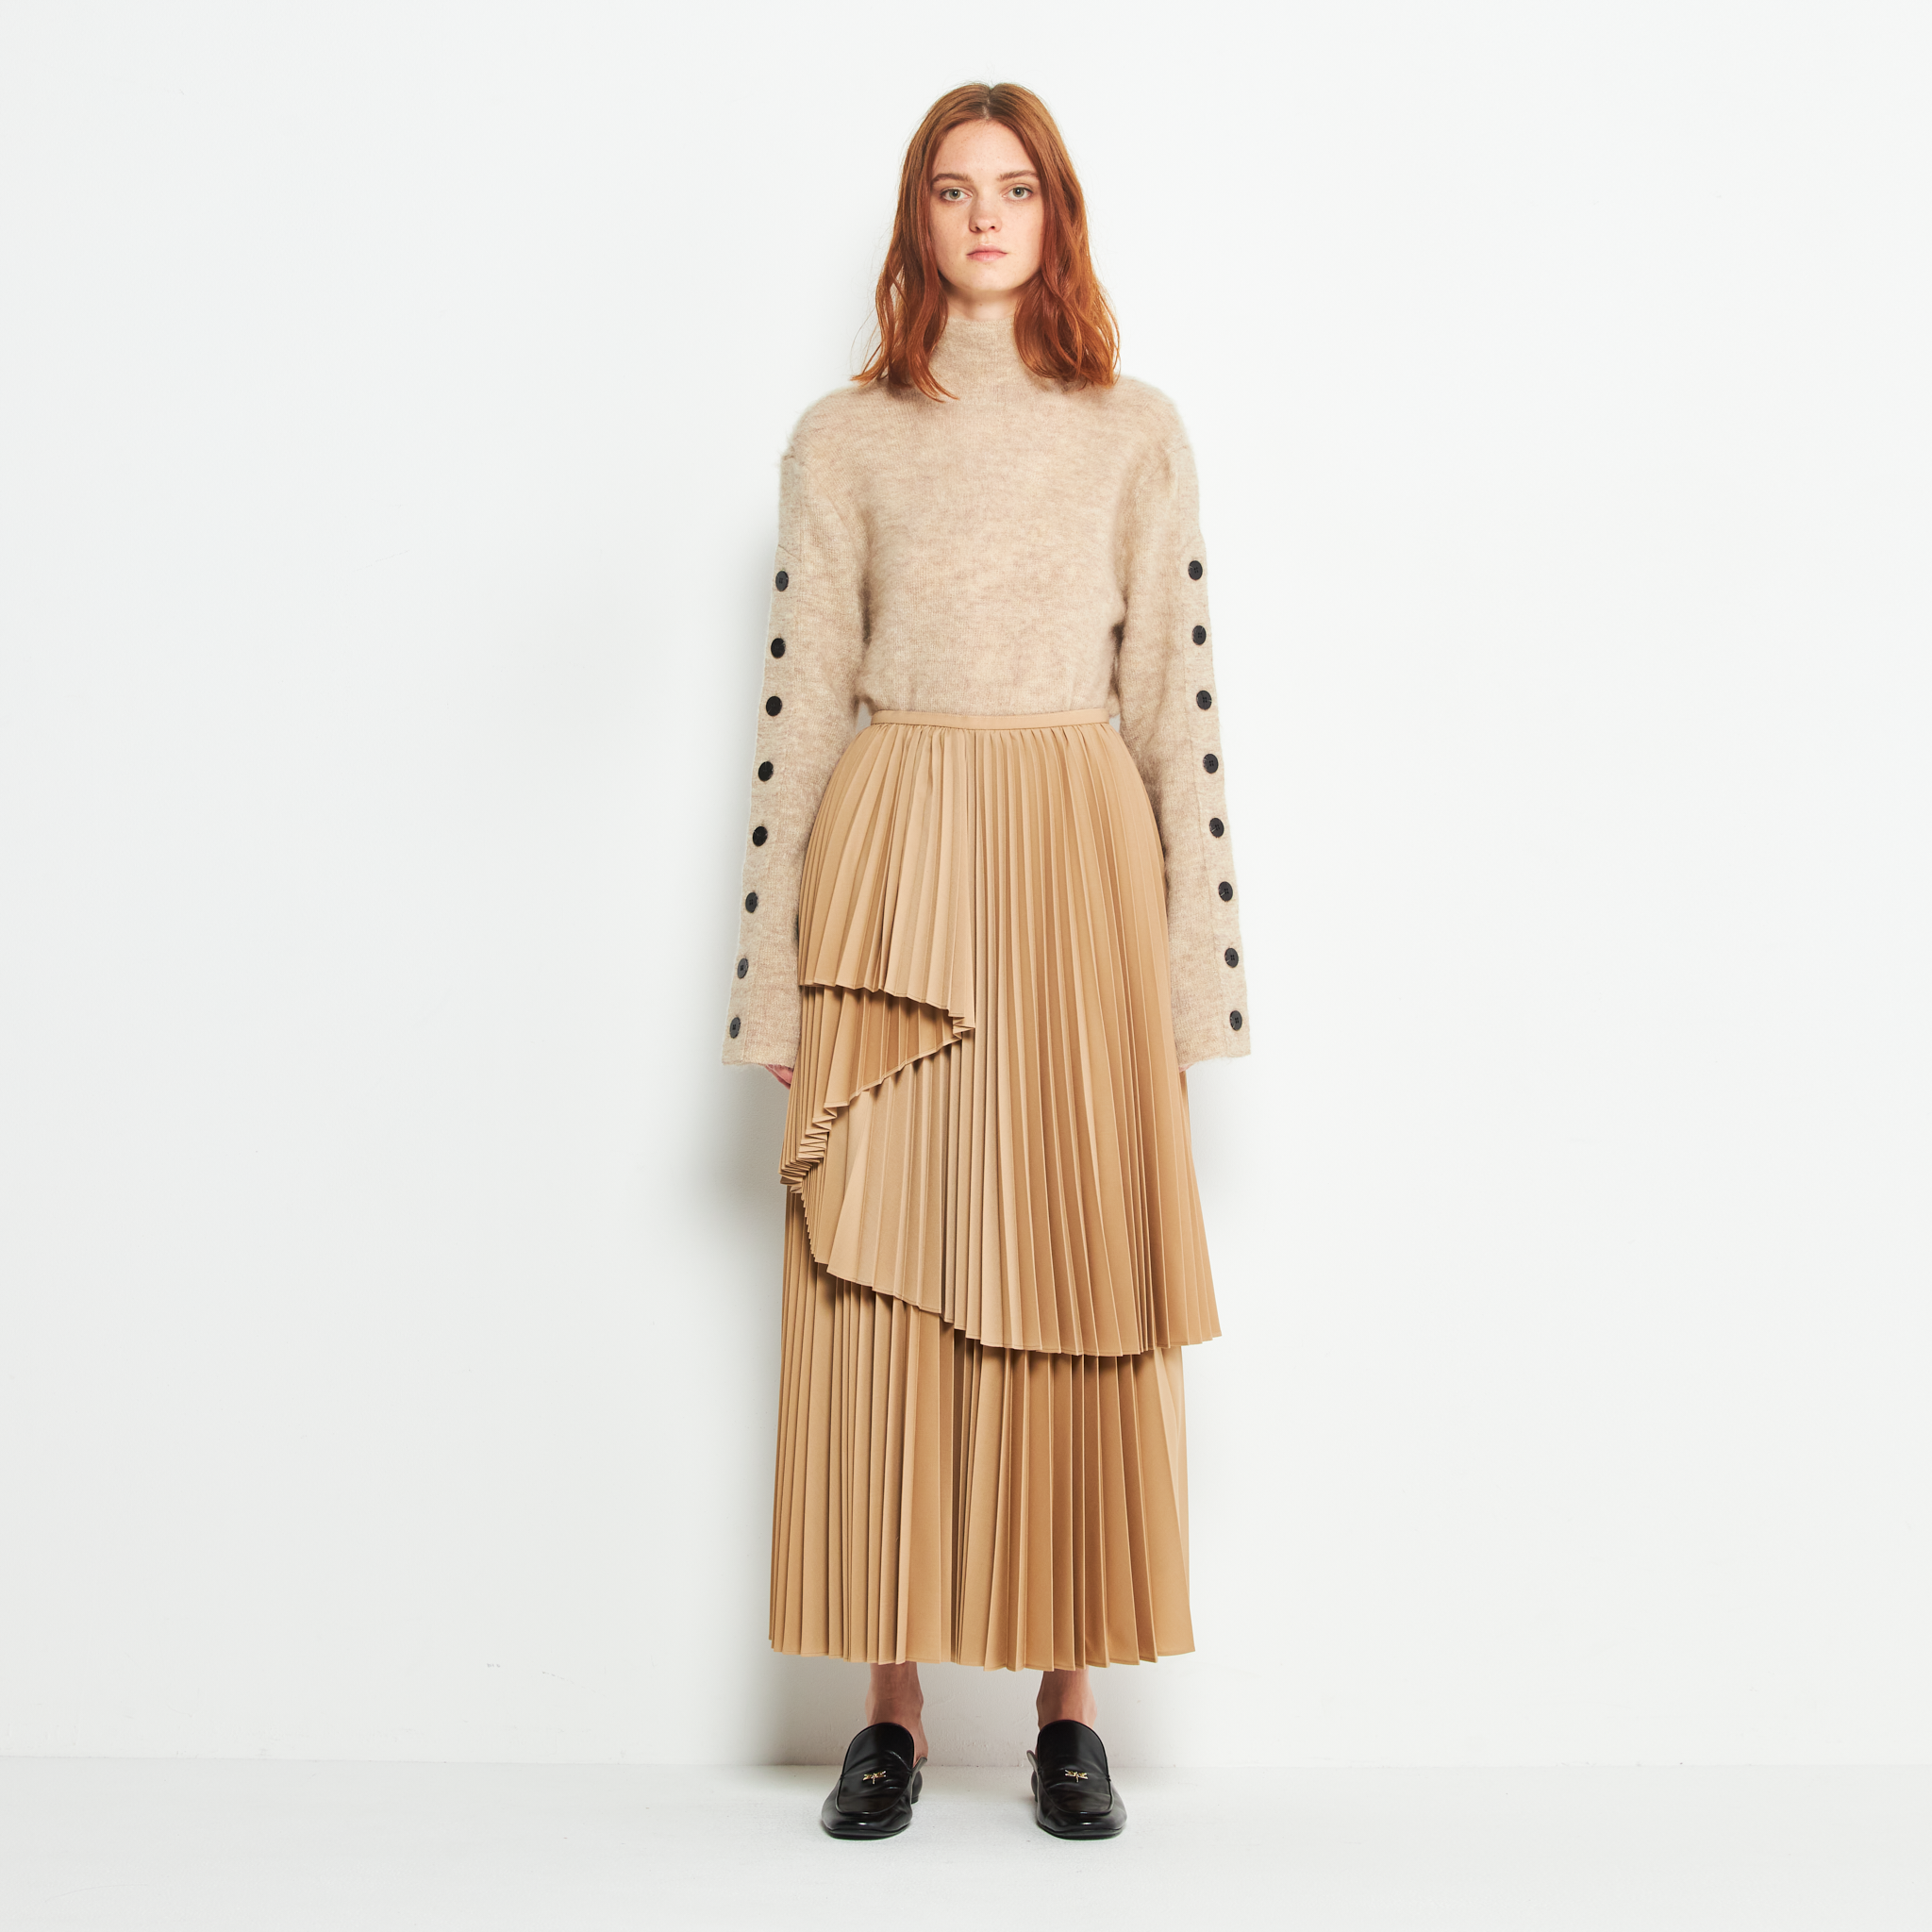 Kim fold layers pleats SK BE